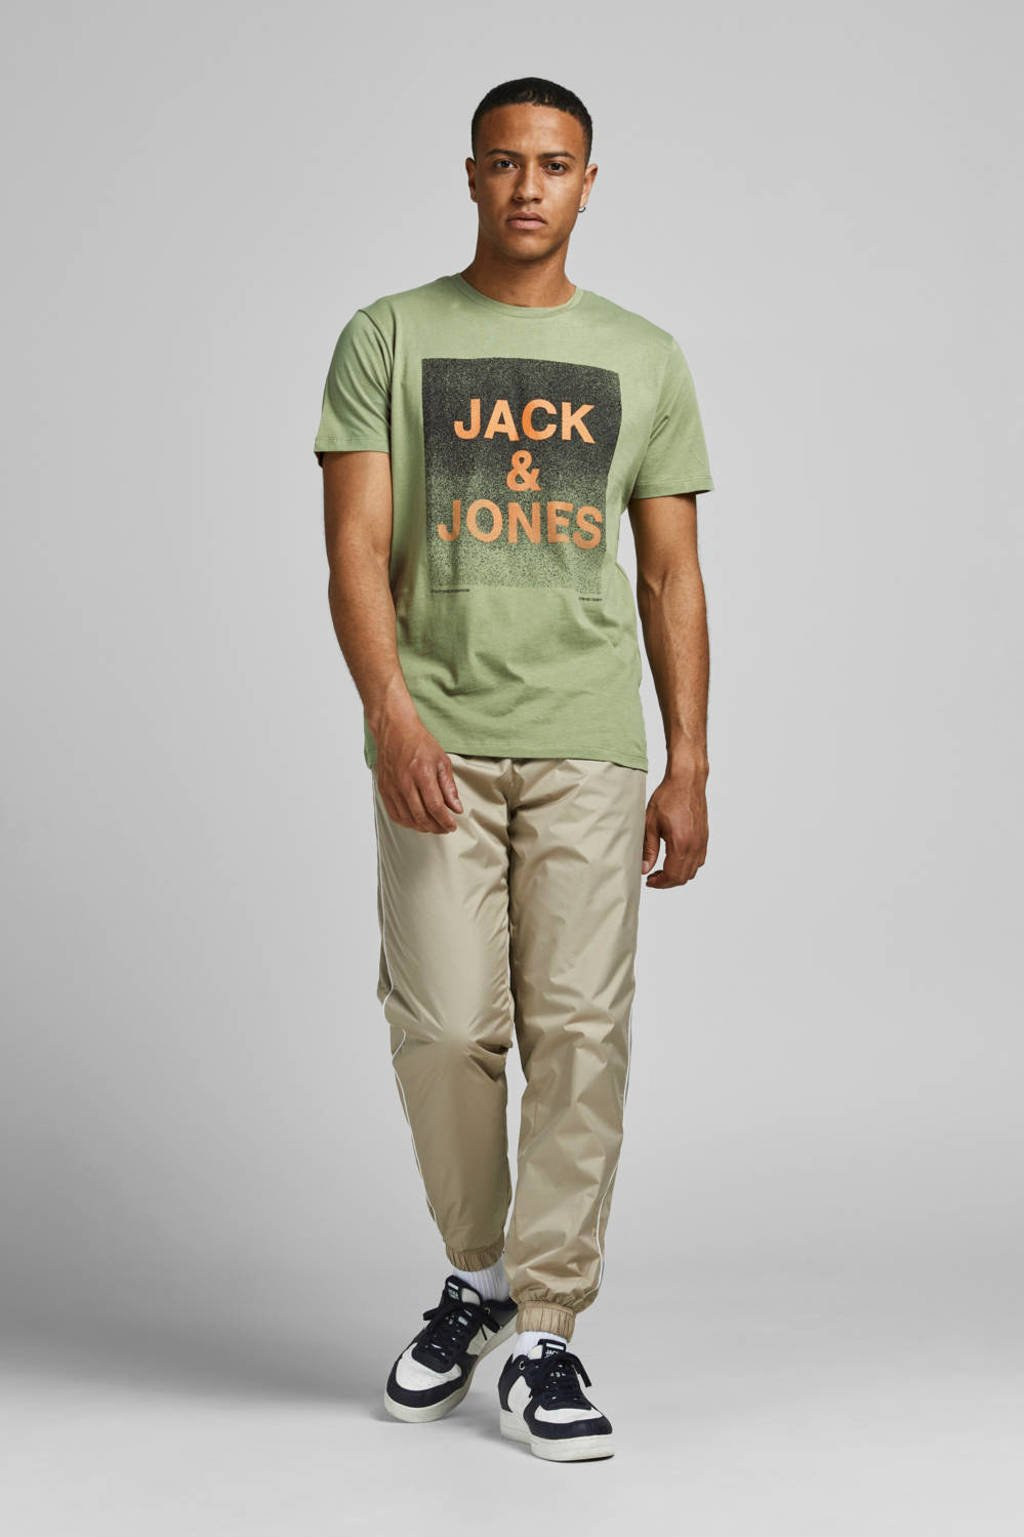 JACK & JONES CORE T-shirt York met logo groen, Groen